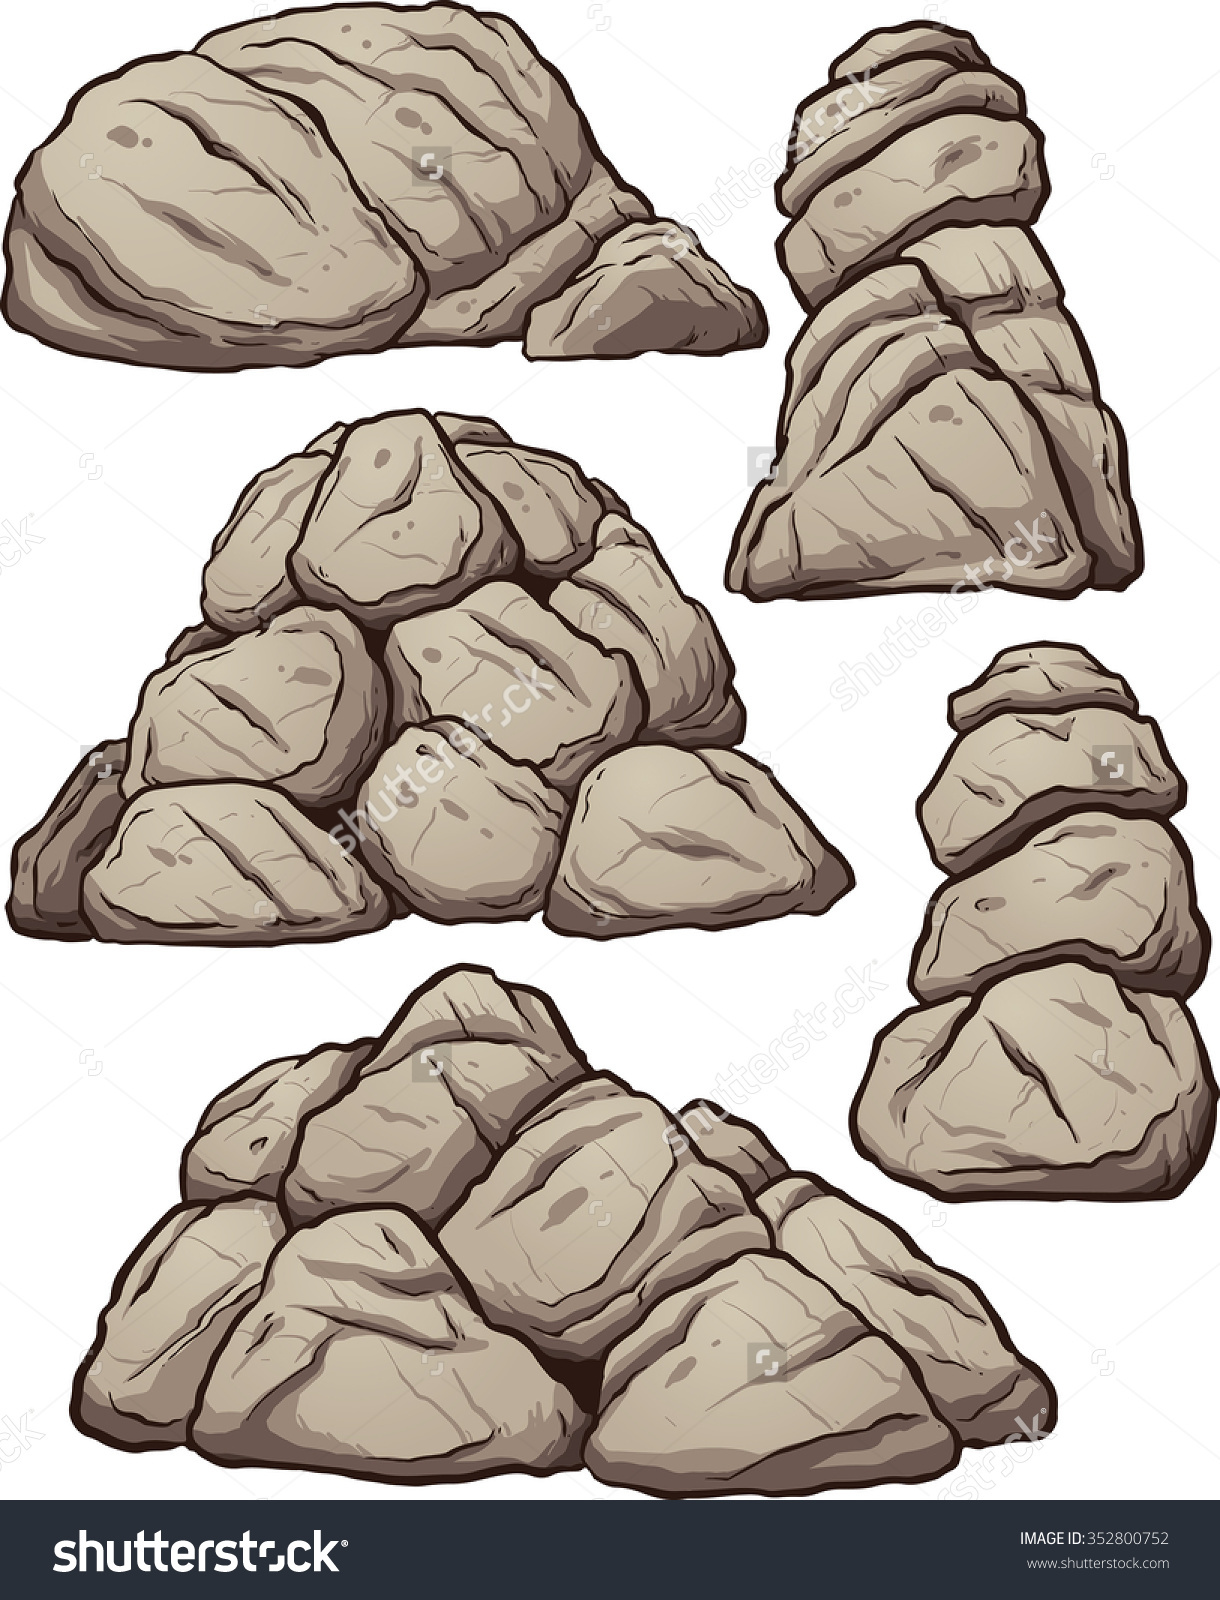 Clip Art Rocks Clipart piles rocks vector clip art illustration stock 352800752 of with simple gradients